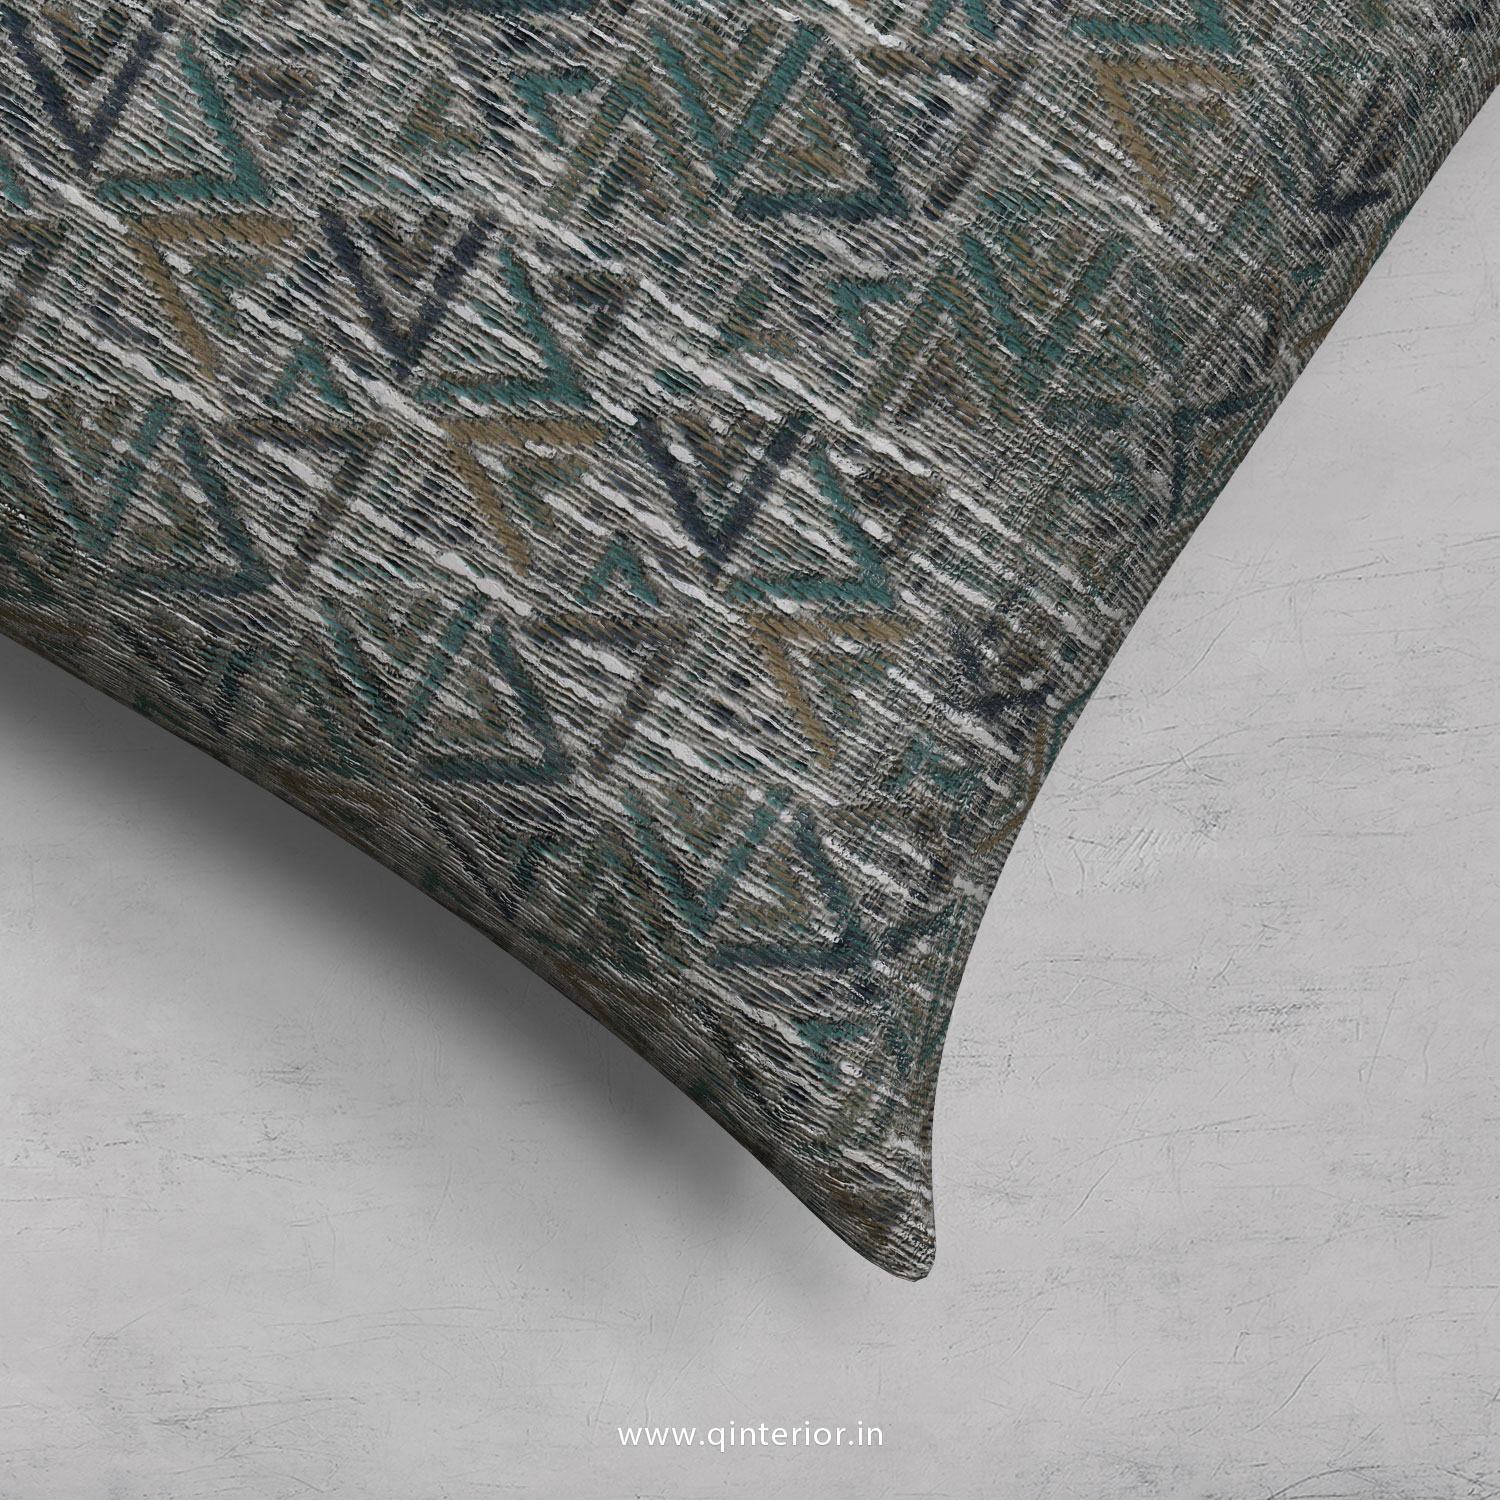 Cushion With Cushion Cover in Jacquard - CUS001 JQ25